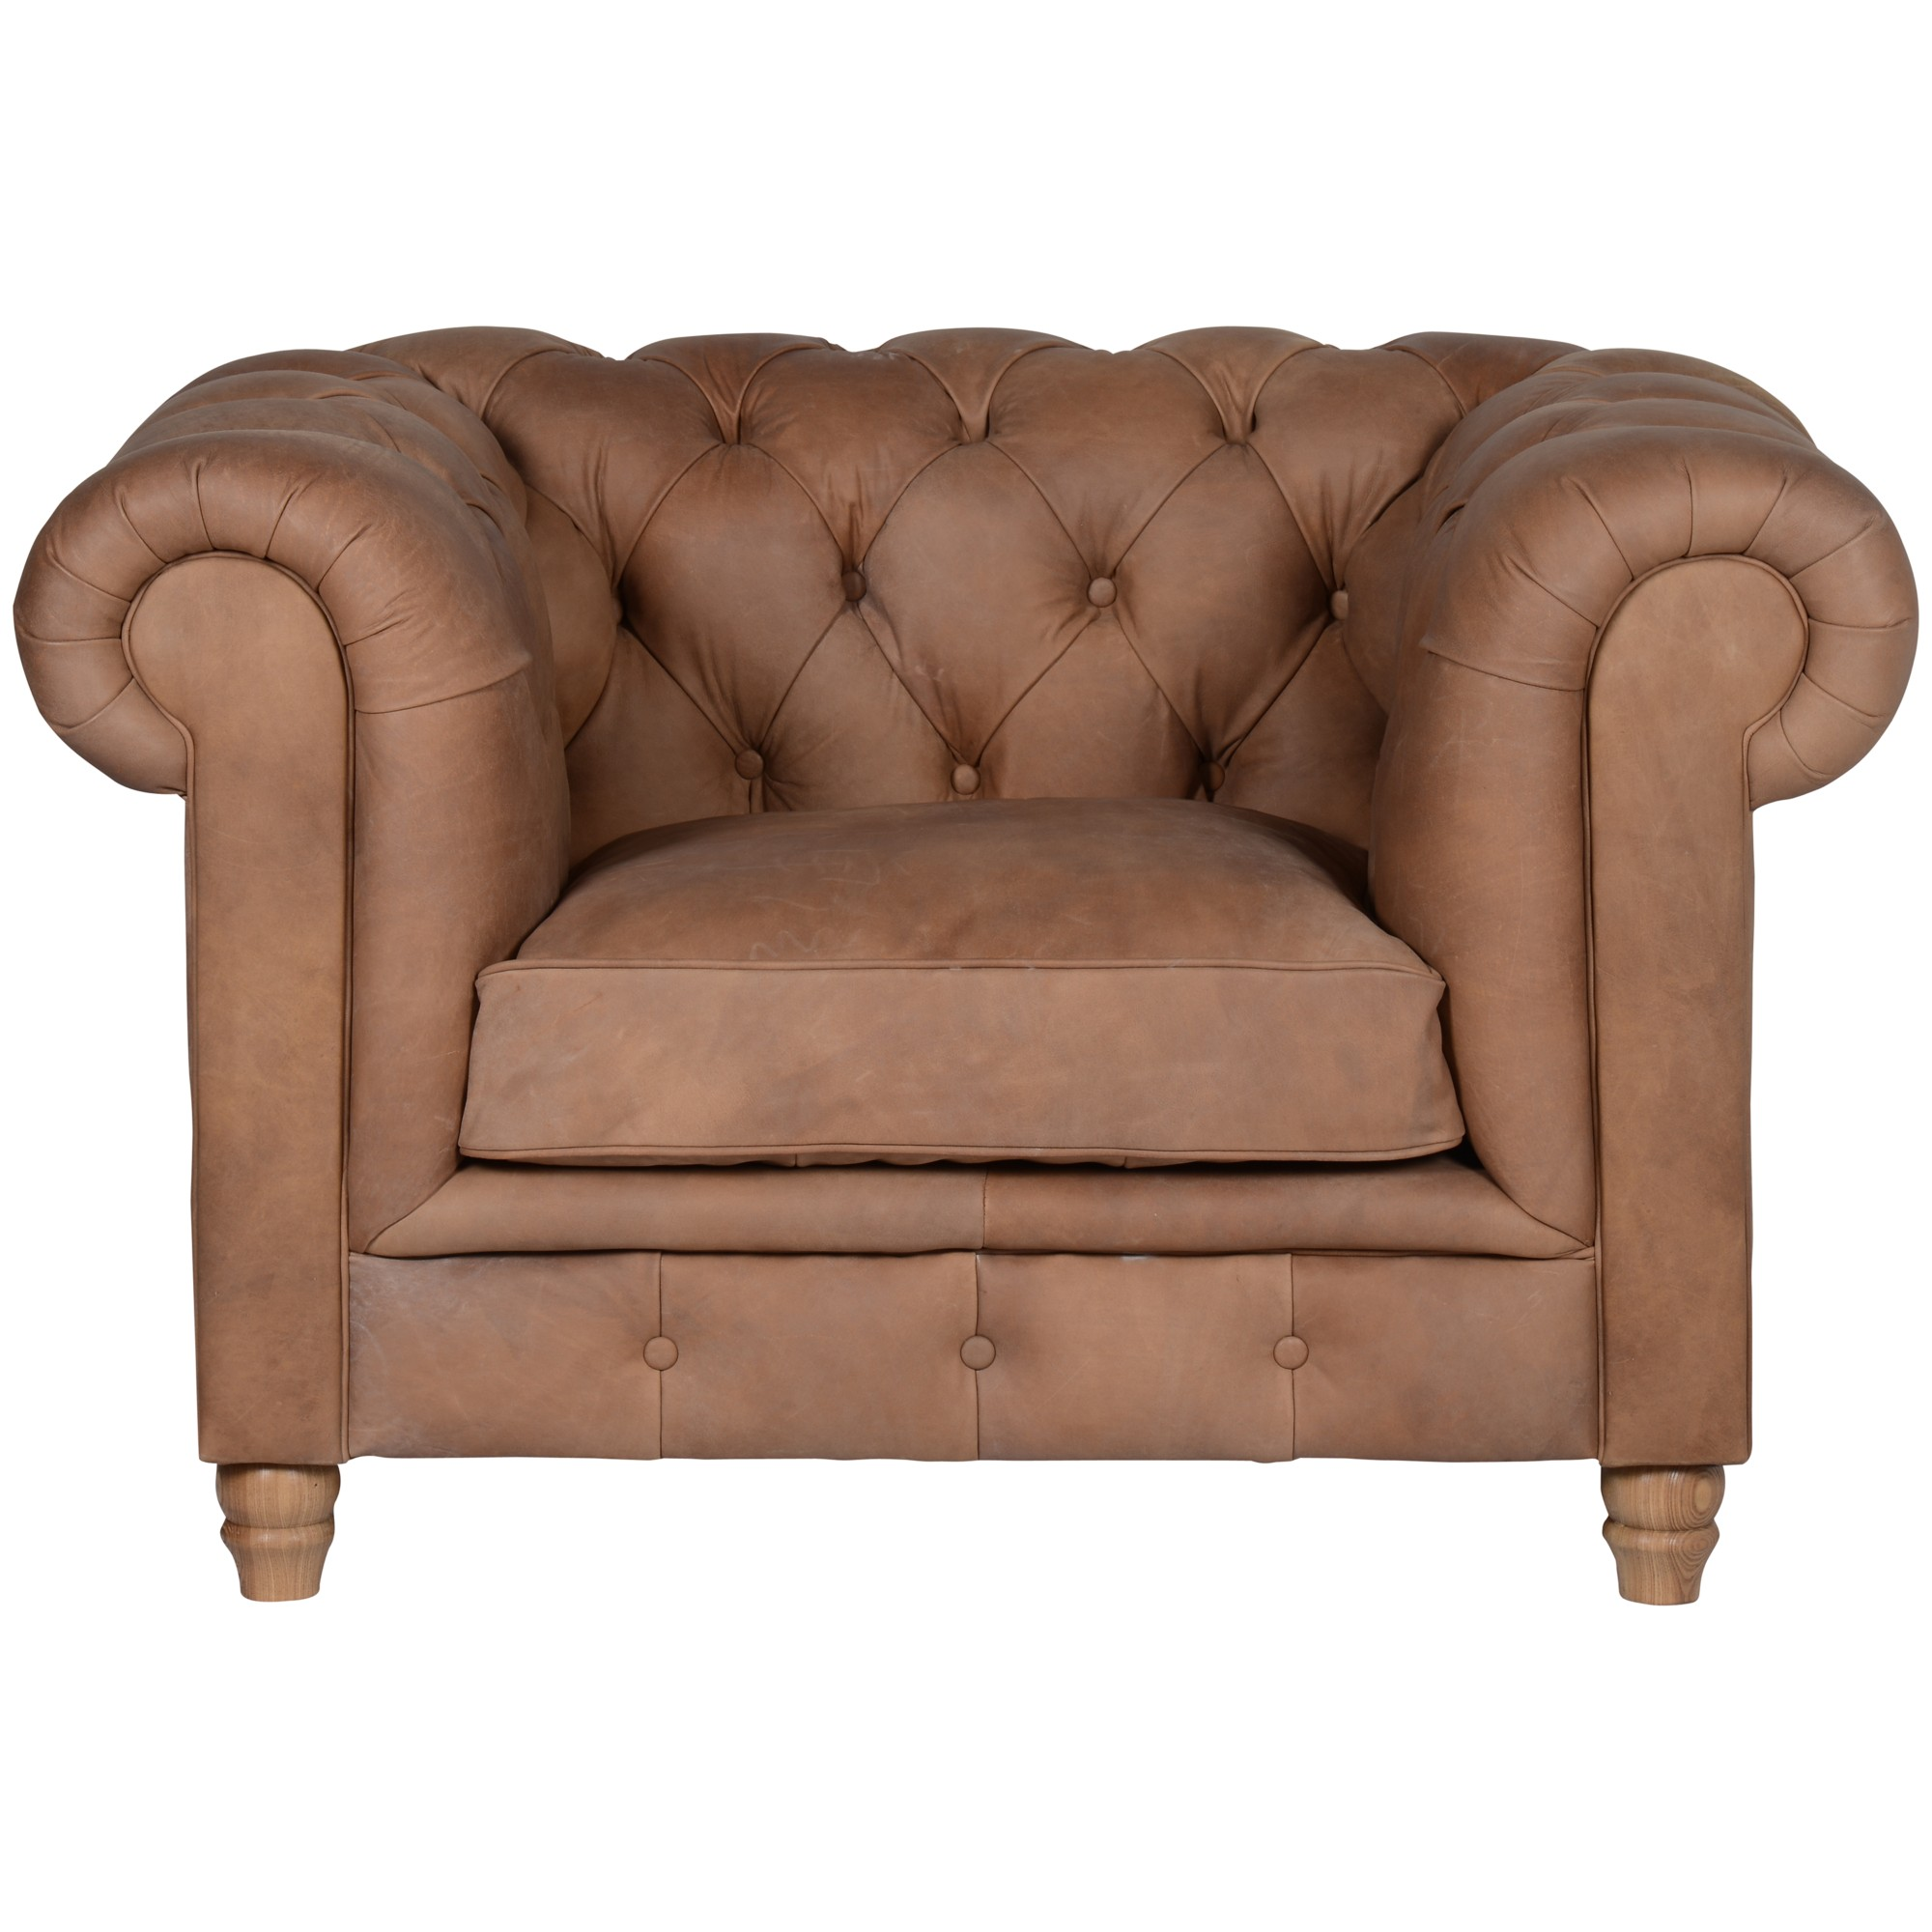 Halo Earle Chesterfield Armchair